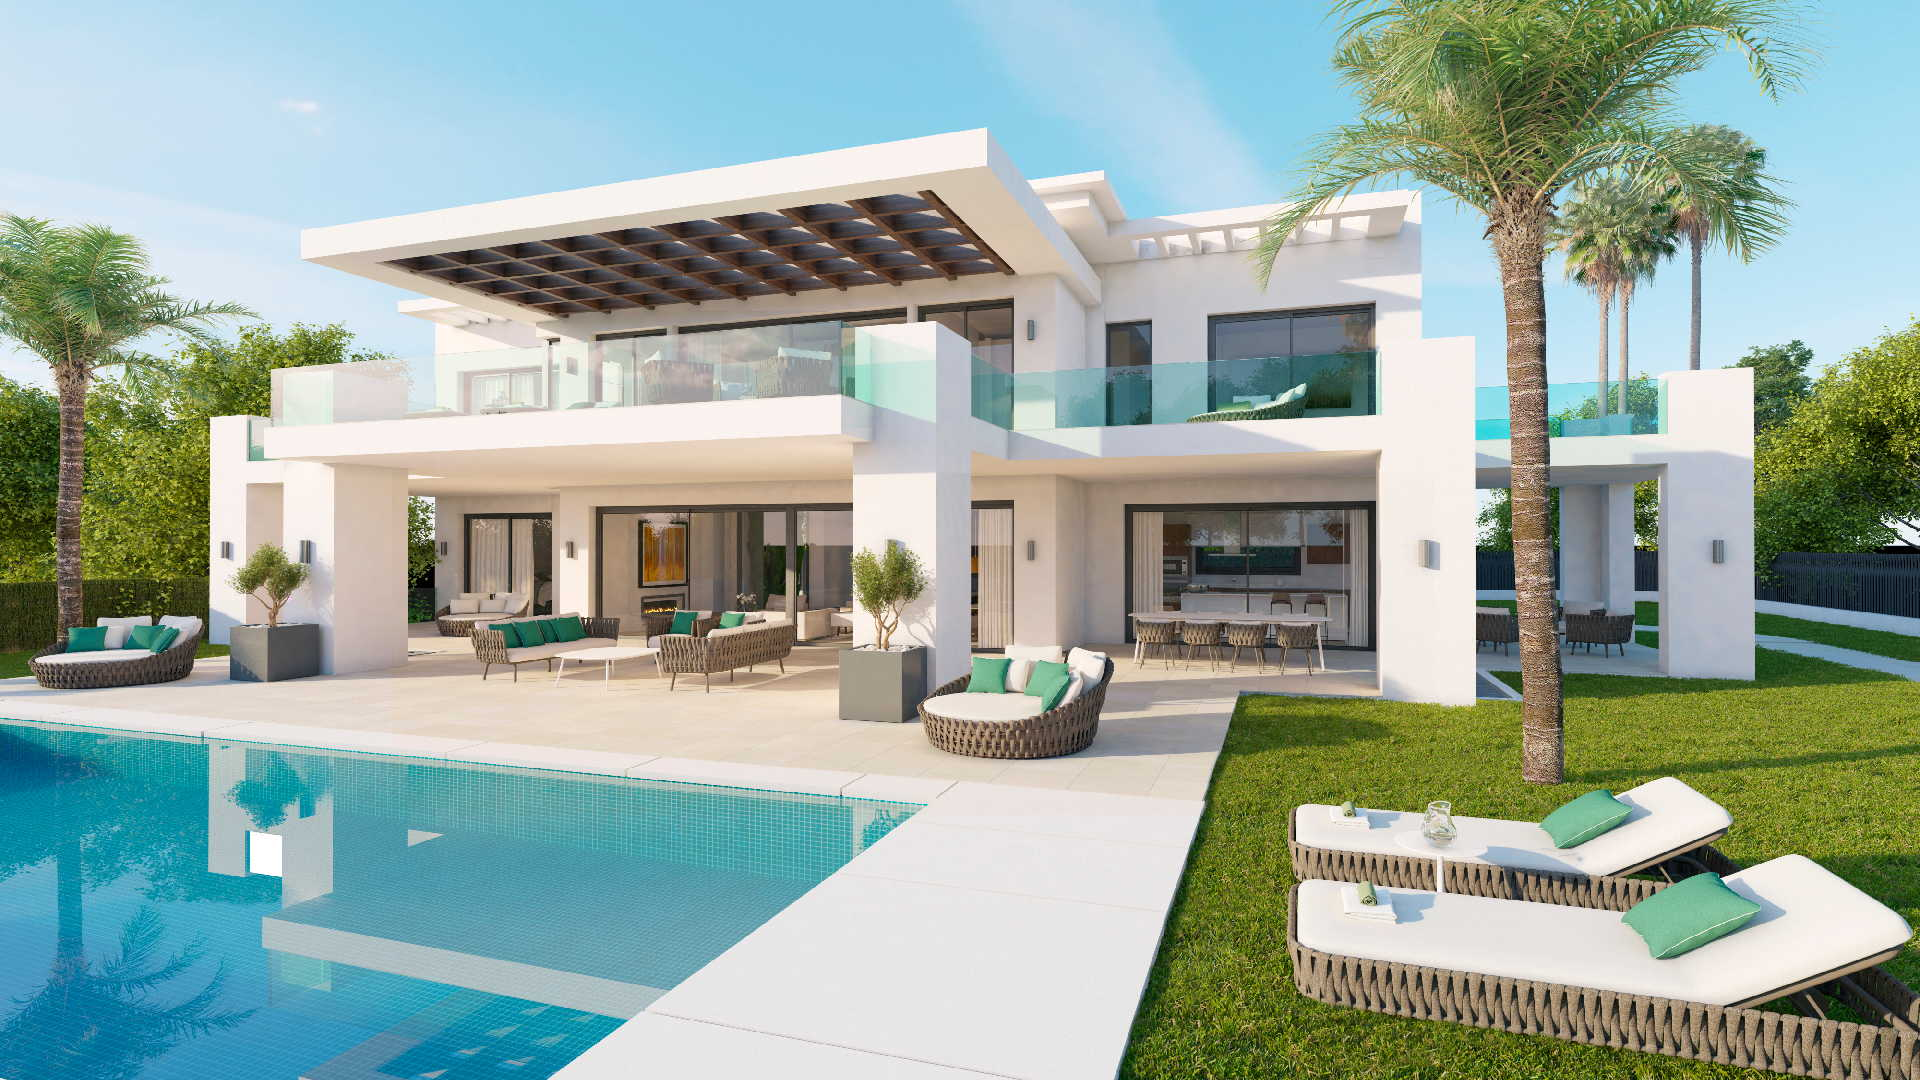 New villa in los olivos nueva andalucia marbella for sale for Villa de luxe contemporaine